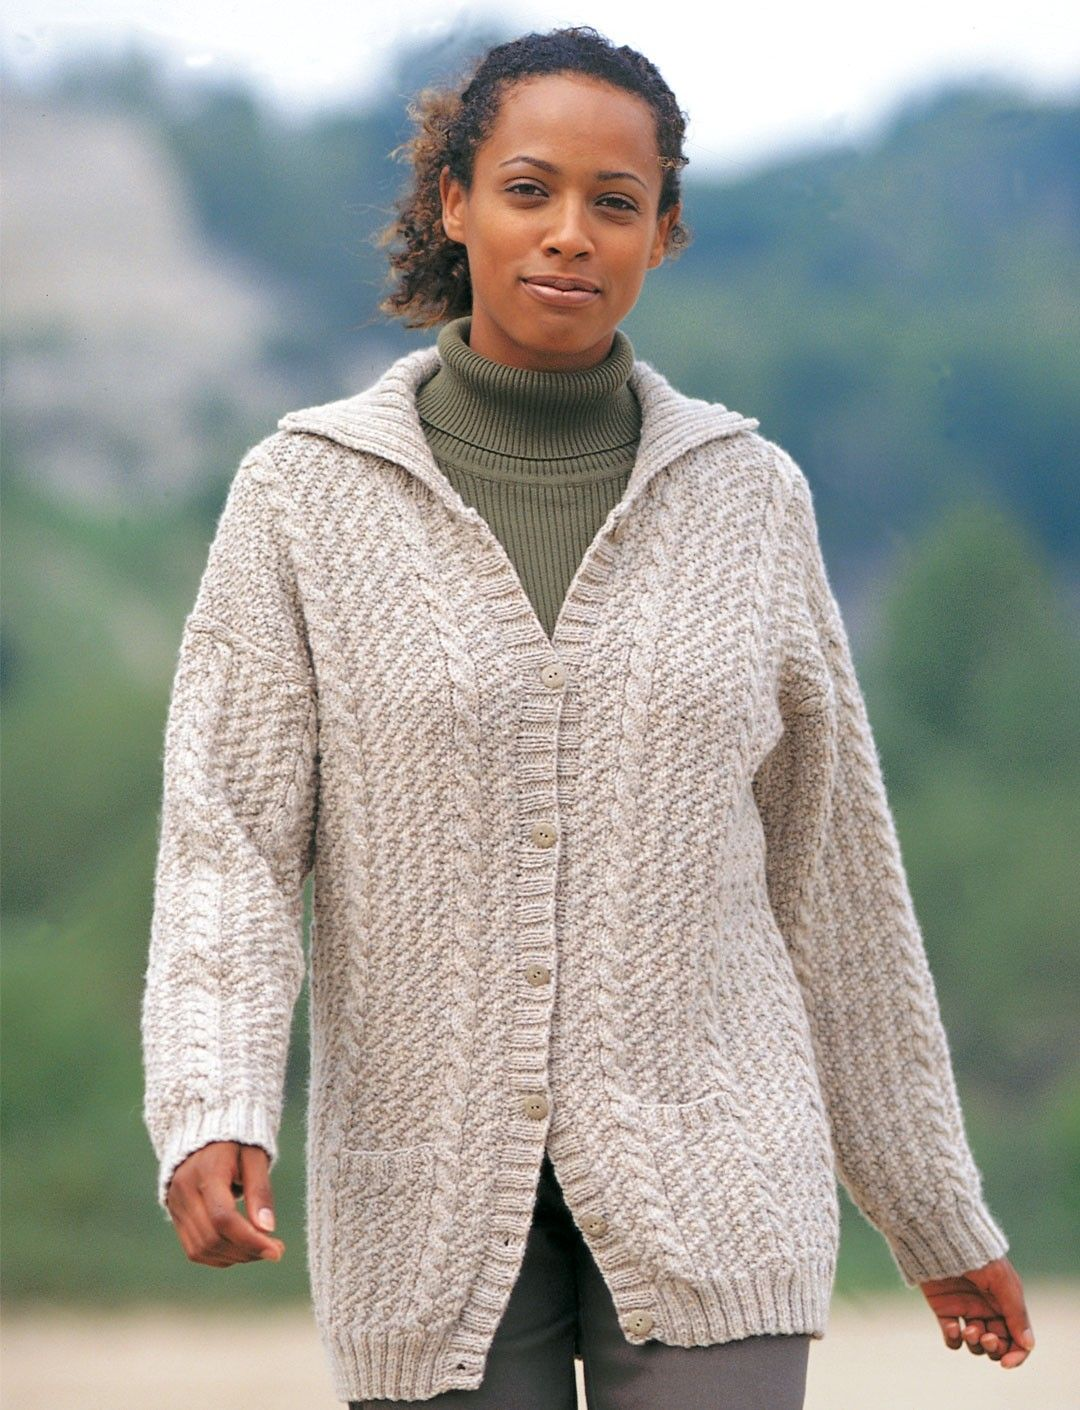 Yarnspirations patons hepburn cardigan patterns hepburn cardigan in patons classic wool worsted discover more patterns by patons at loveknitting the worlds largest range of knitting supplies we stock bankloansurffo Gallery